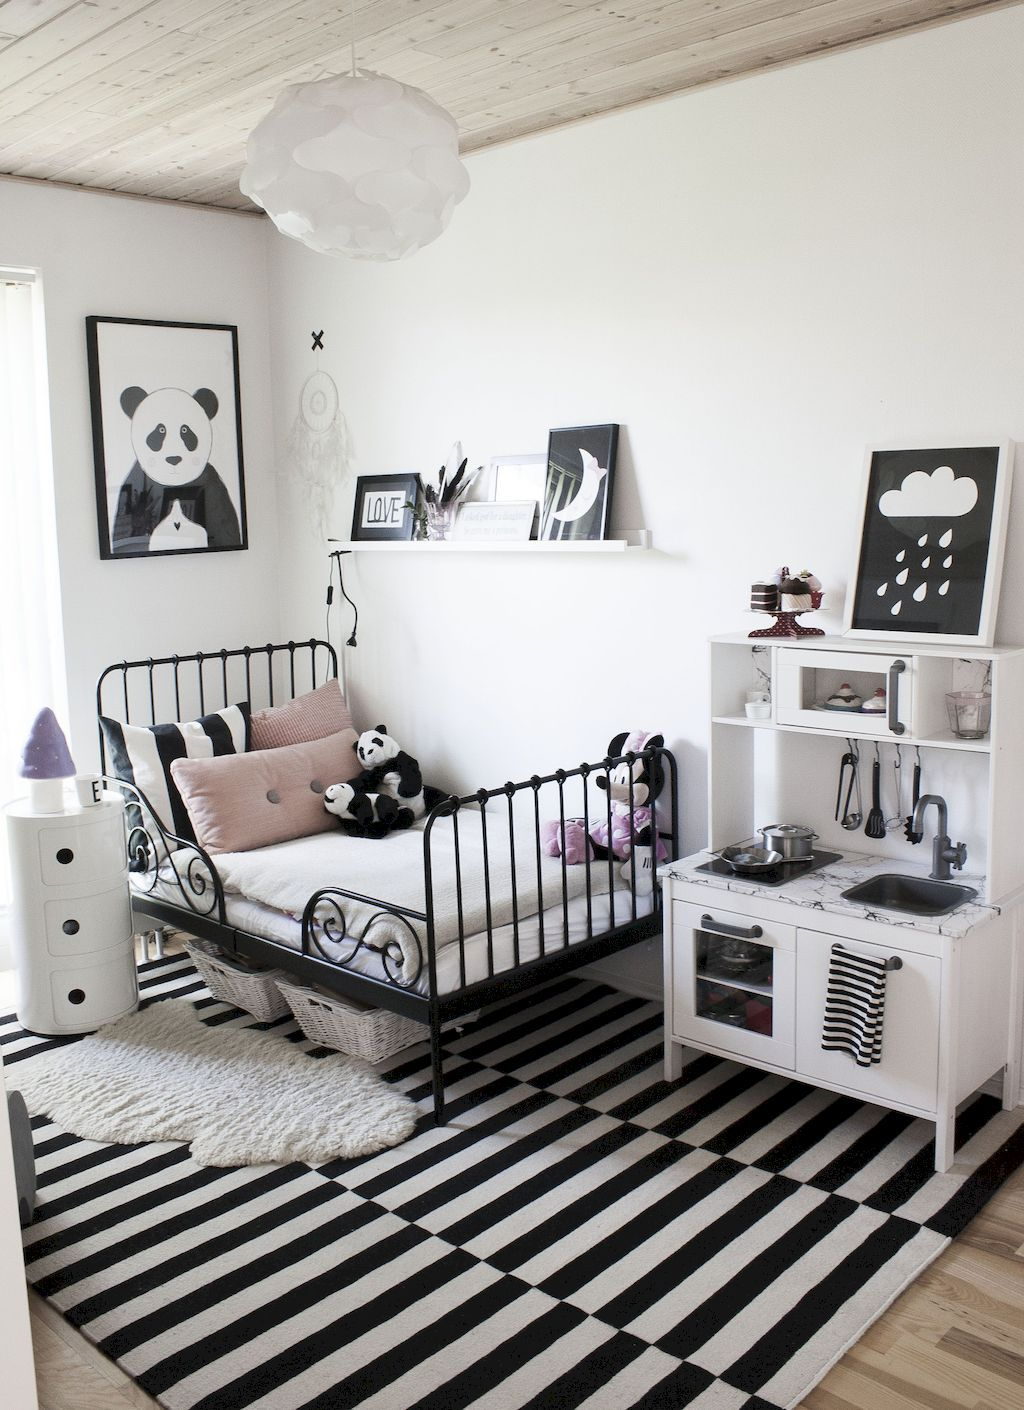 Adorable Cute Black And White Children S Bedroom Ideas Https Carribeanpic Com Cute Black And White Chi White Kids Room White Girls Rooms Black White Bedrooms